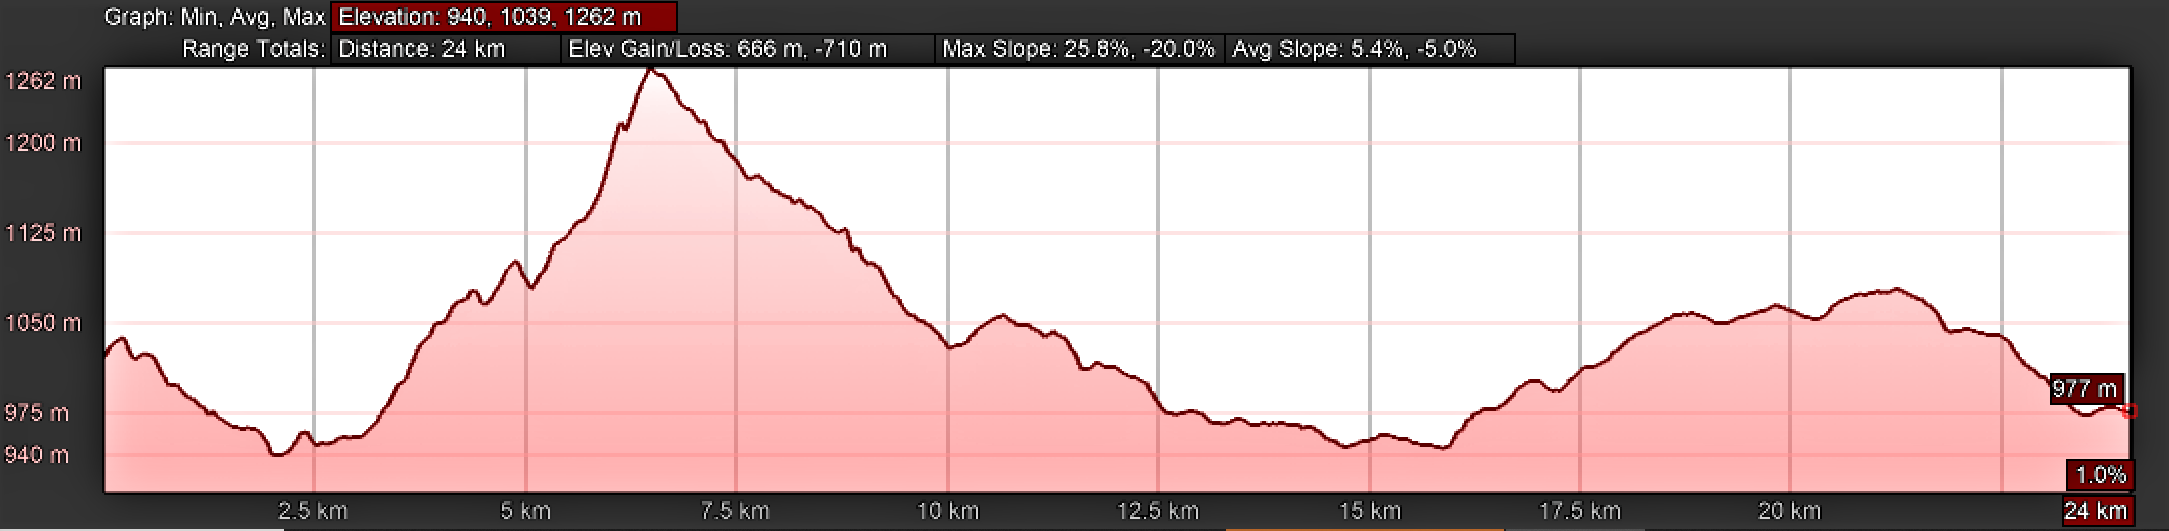 Elevation Profile, Camino Sanabrés, Day Seven, Lubián to A Gudiña